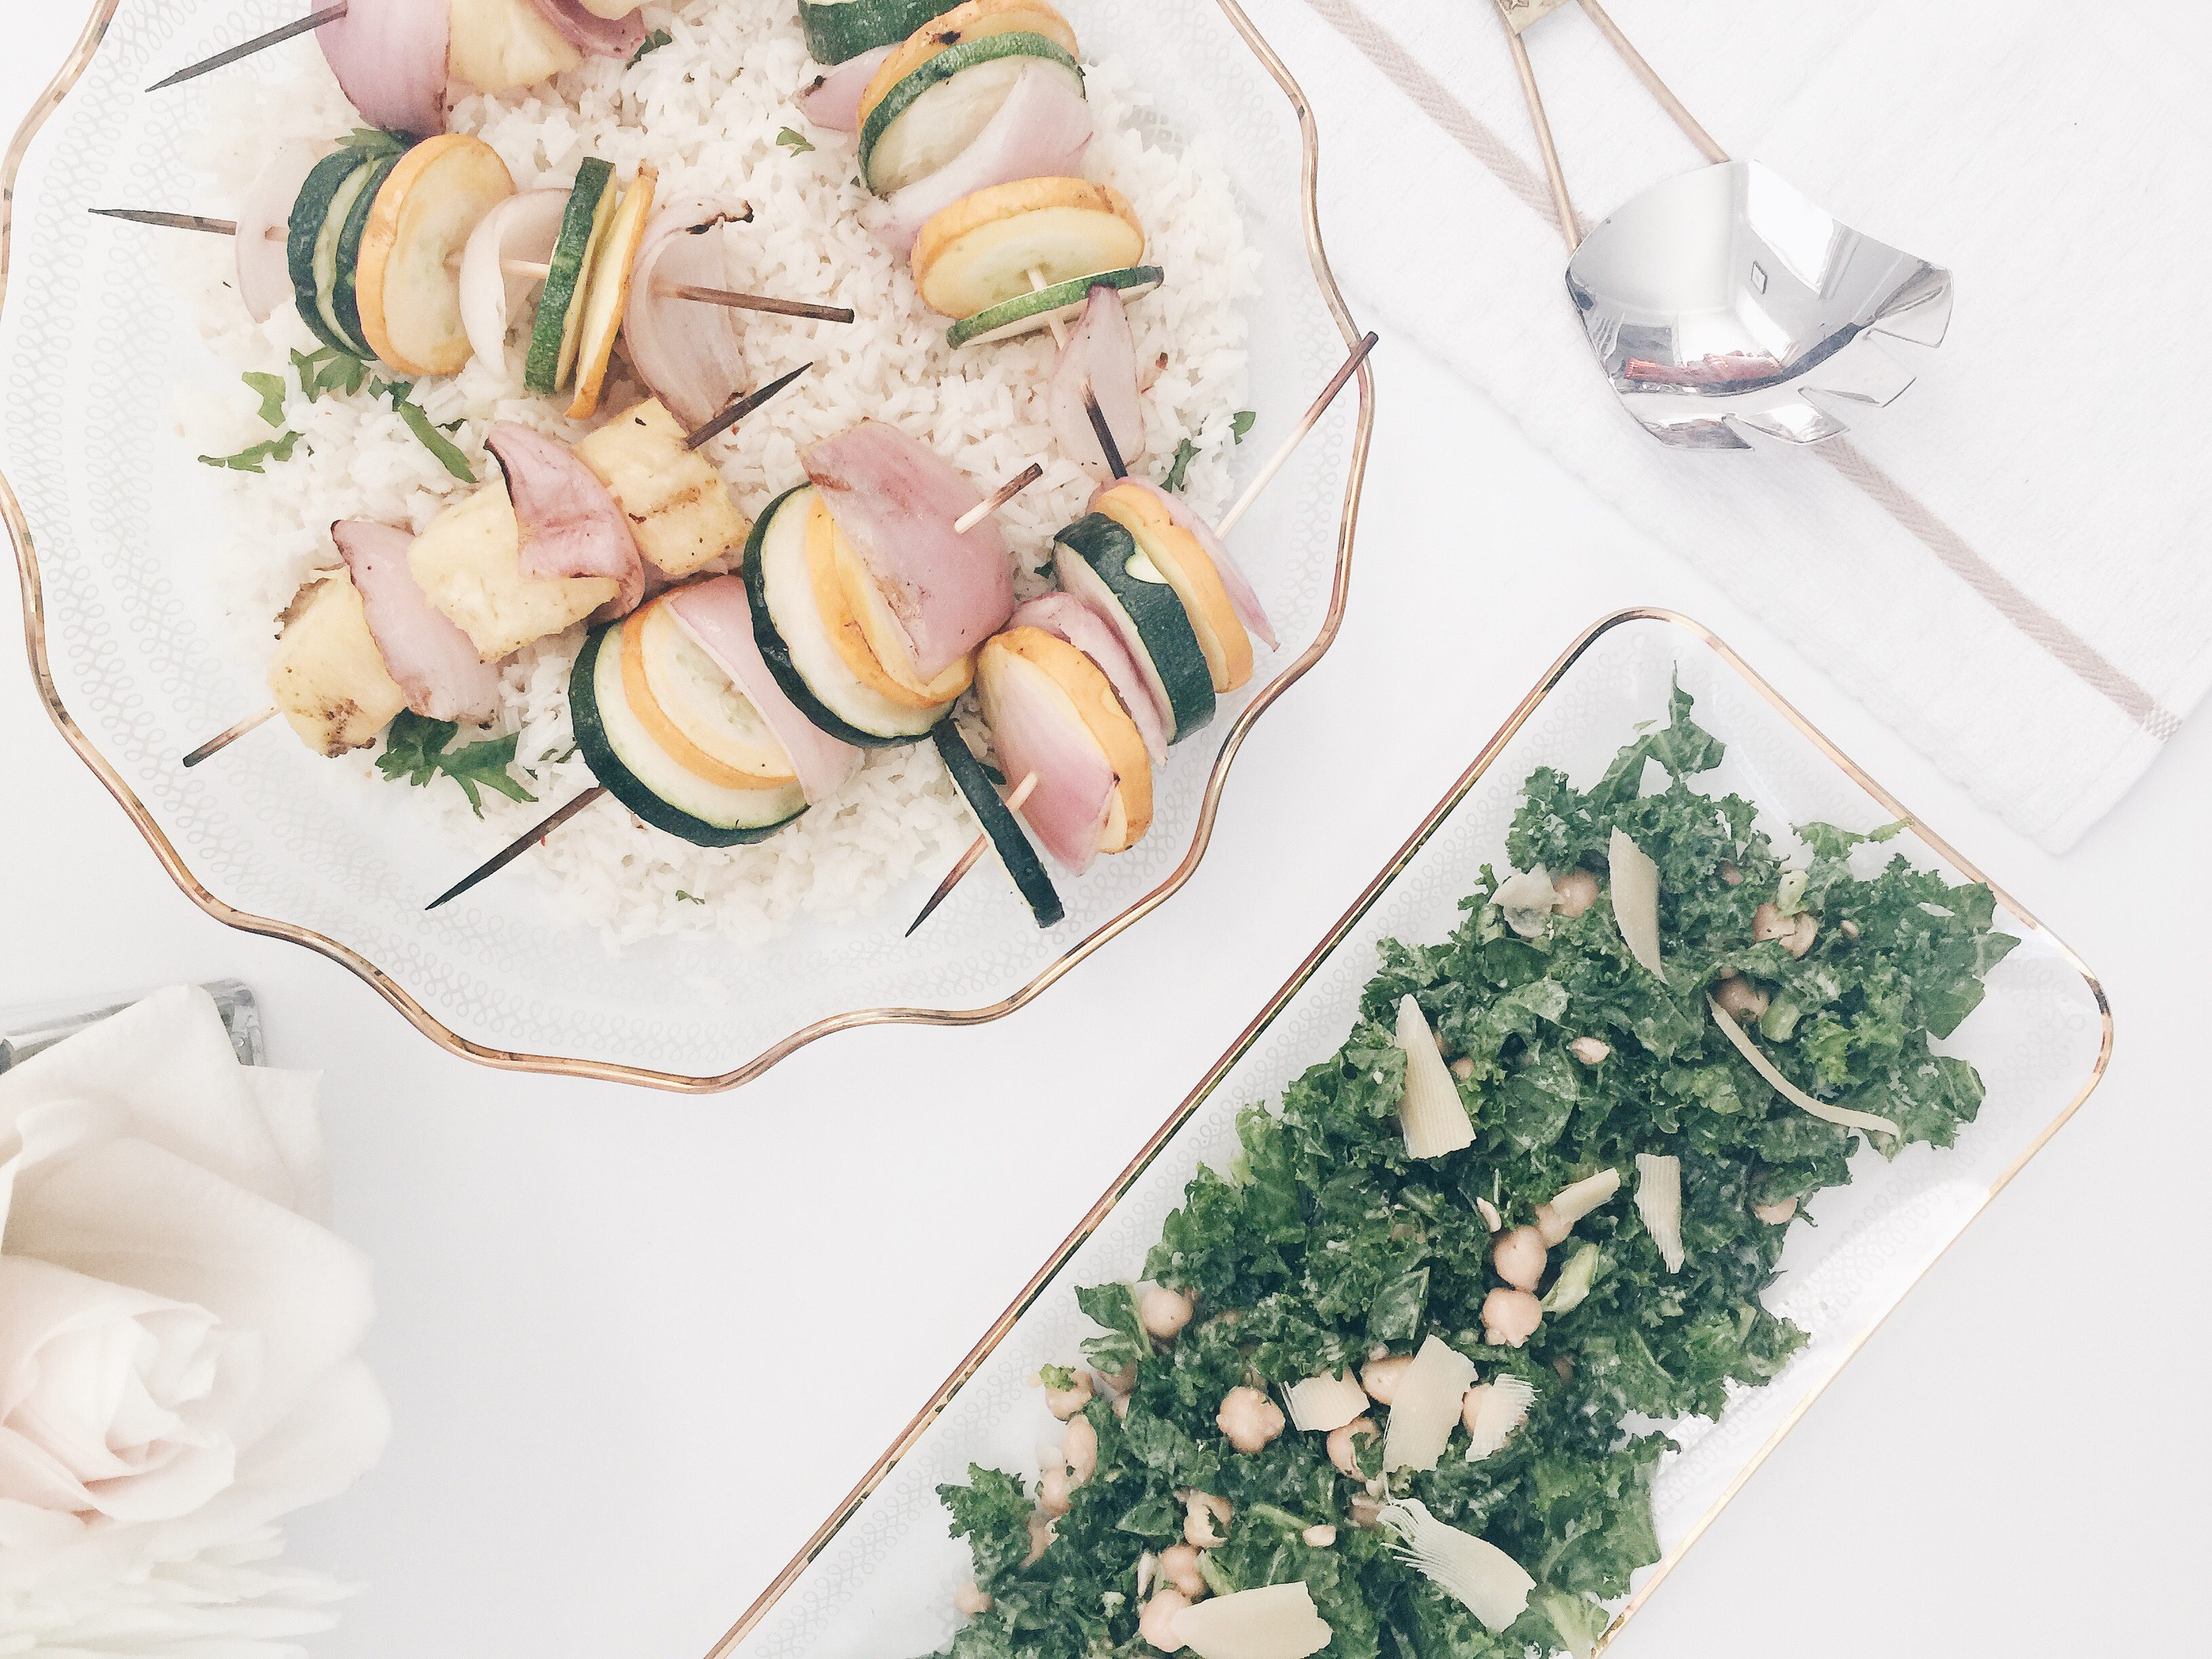 Chelsea Charles Tries Terra's Kitchen Meal Delivery Service Via Count Me Healthy